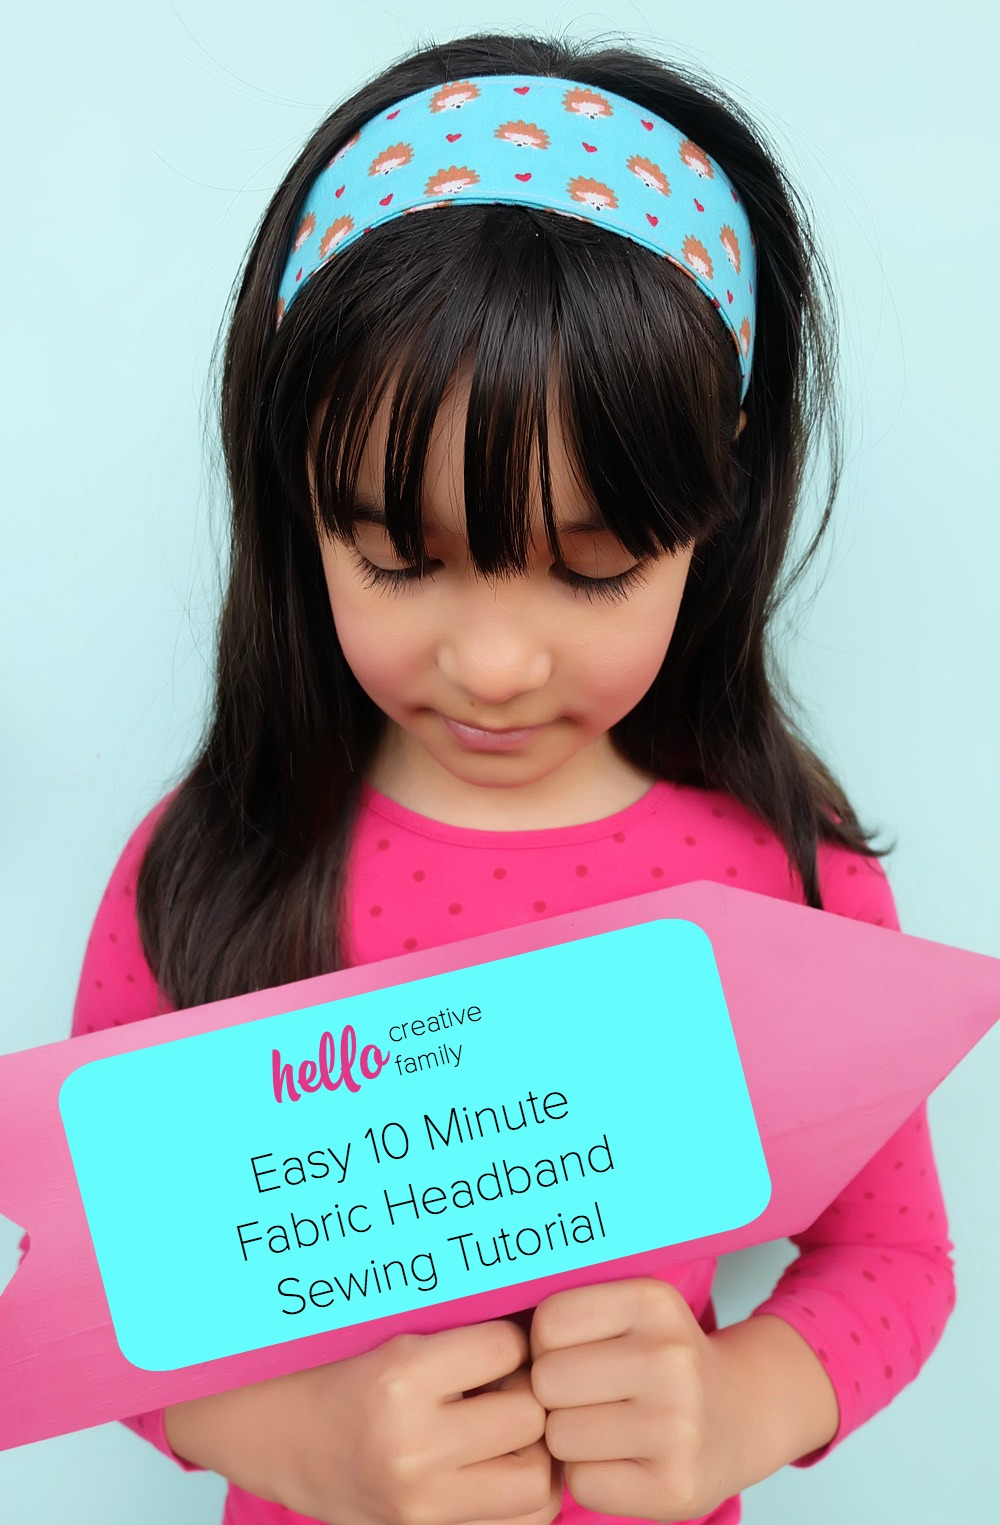 Bust out those fabric scraps and whip up this quick and easy sewing project! This 10 Minute Fabric Headband Sewing Tutorial will have you making a super cute hair accessory in minutes! Create this sewing project using the Cricut Maker. Also learn why a Cricut is the perfect tool if you are in a craft slump or want to learn to craft! #Cricut #sewing #hairaccessories #diy